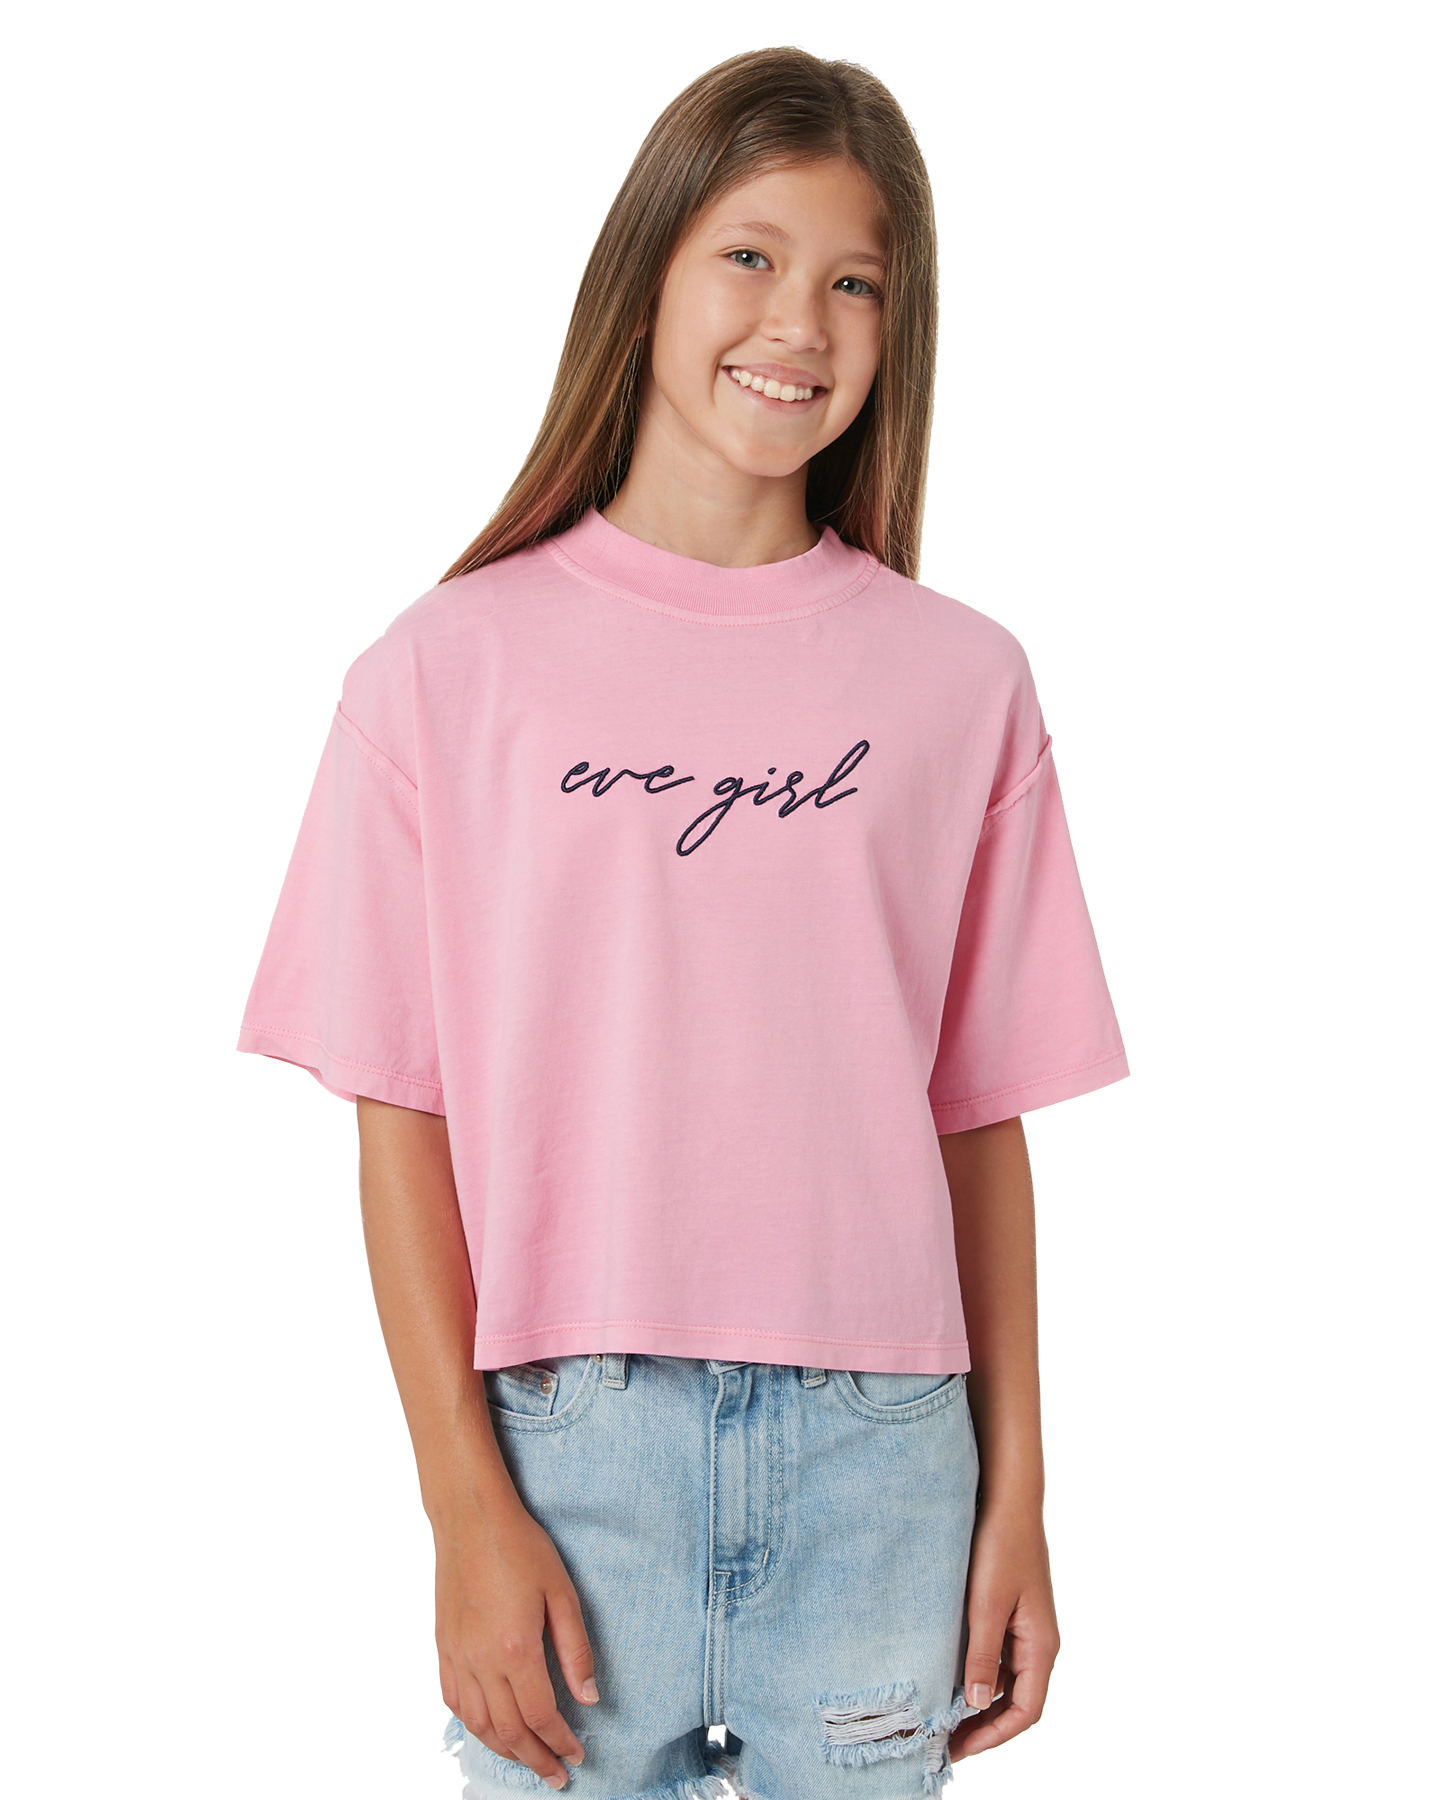 Eves Sister Girls Signature Tee - Teen Pink